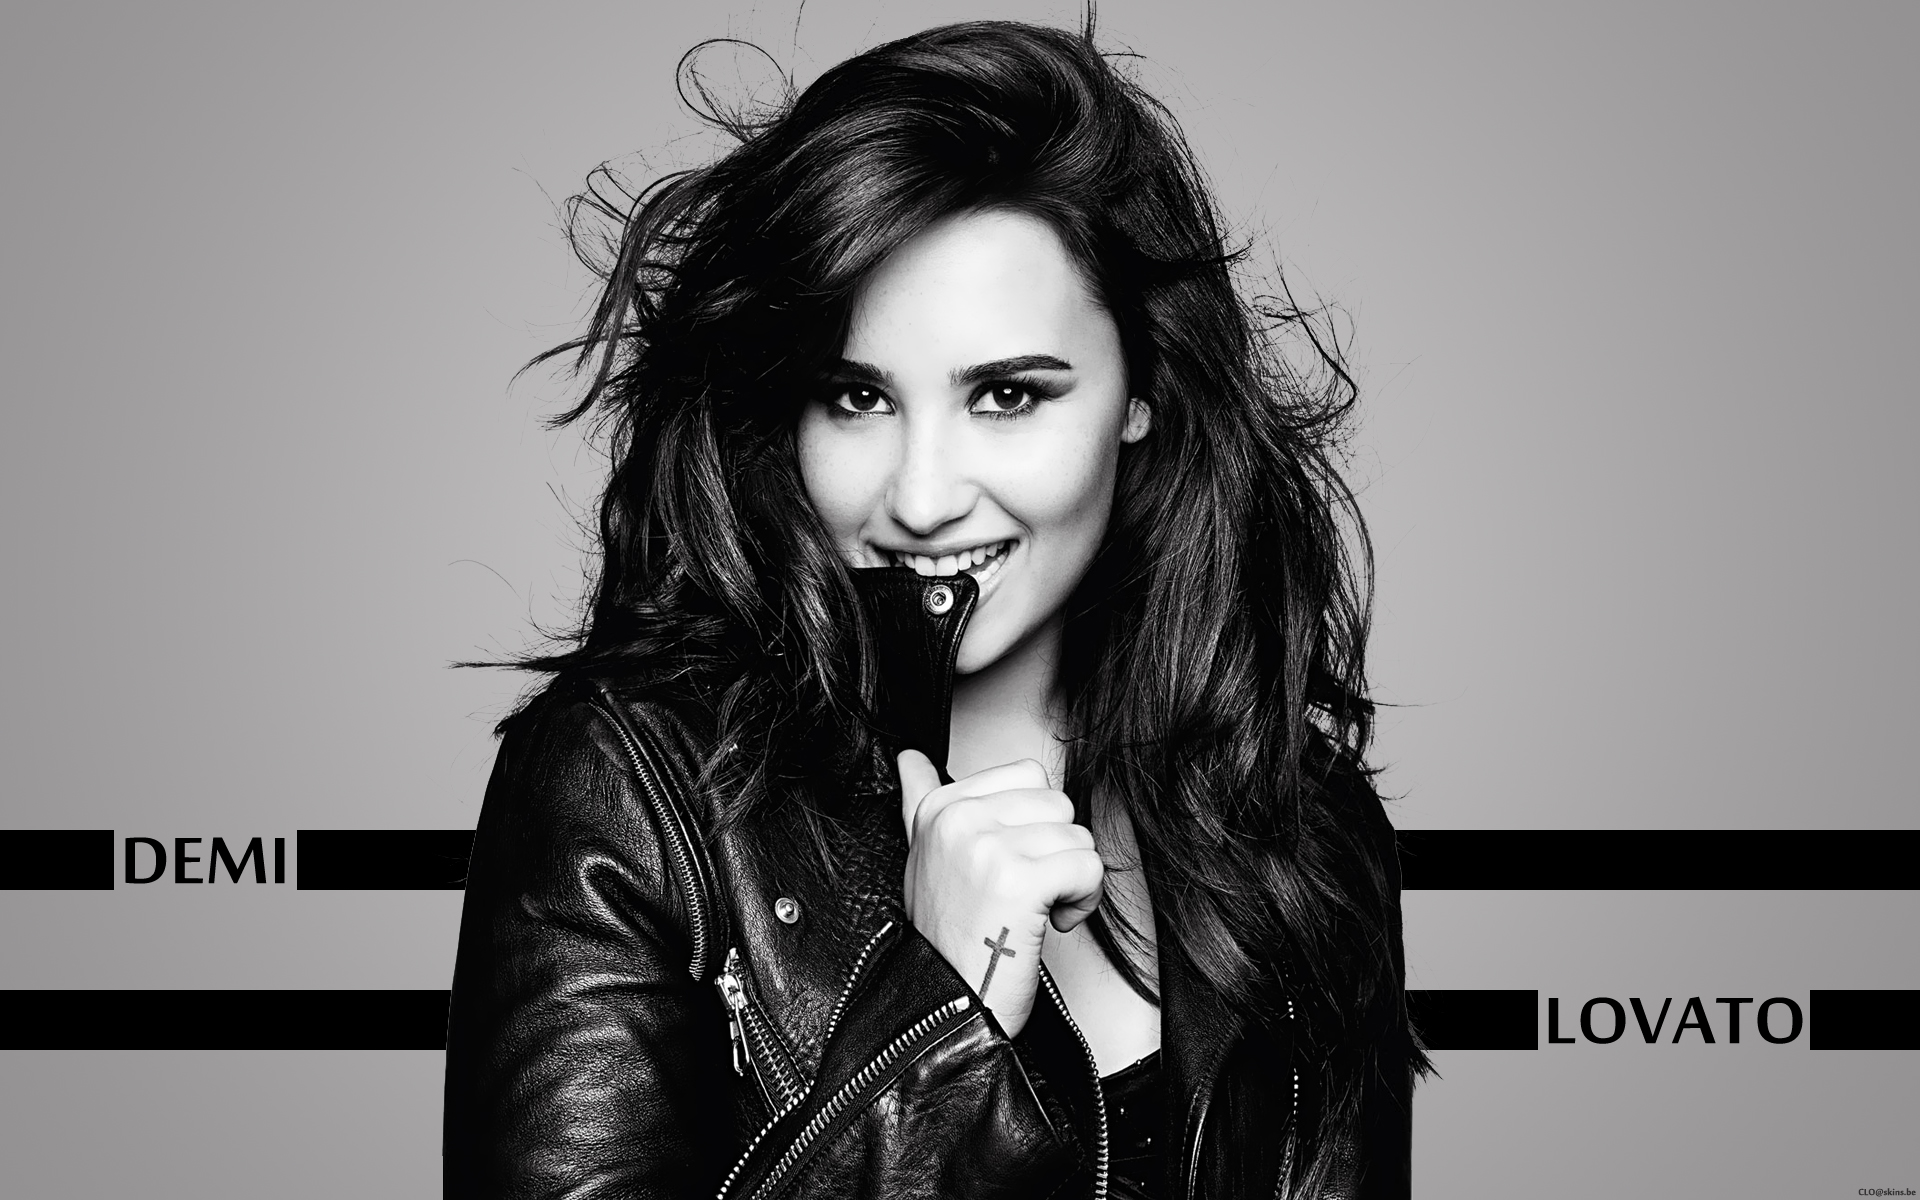 Demi Lovato 2013 Wallpaper